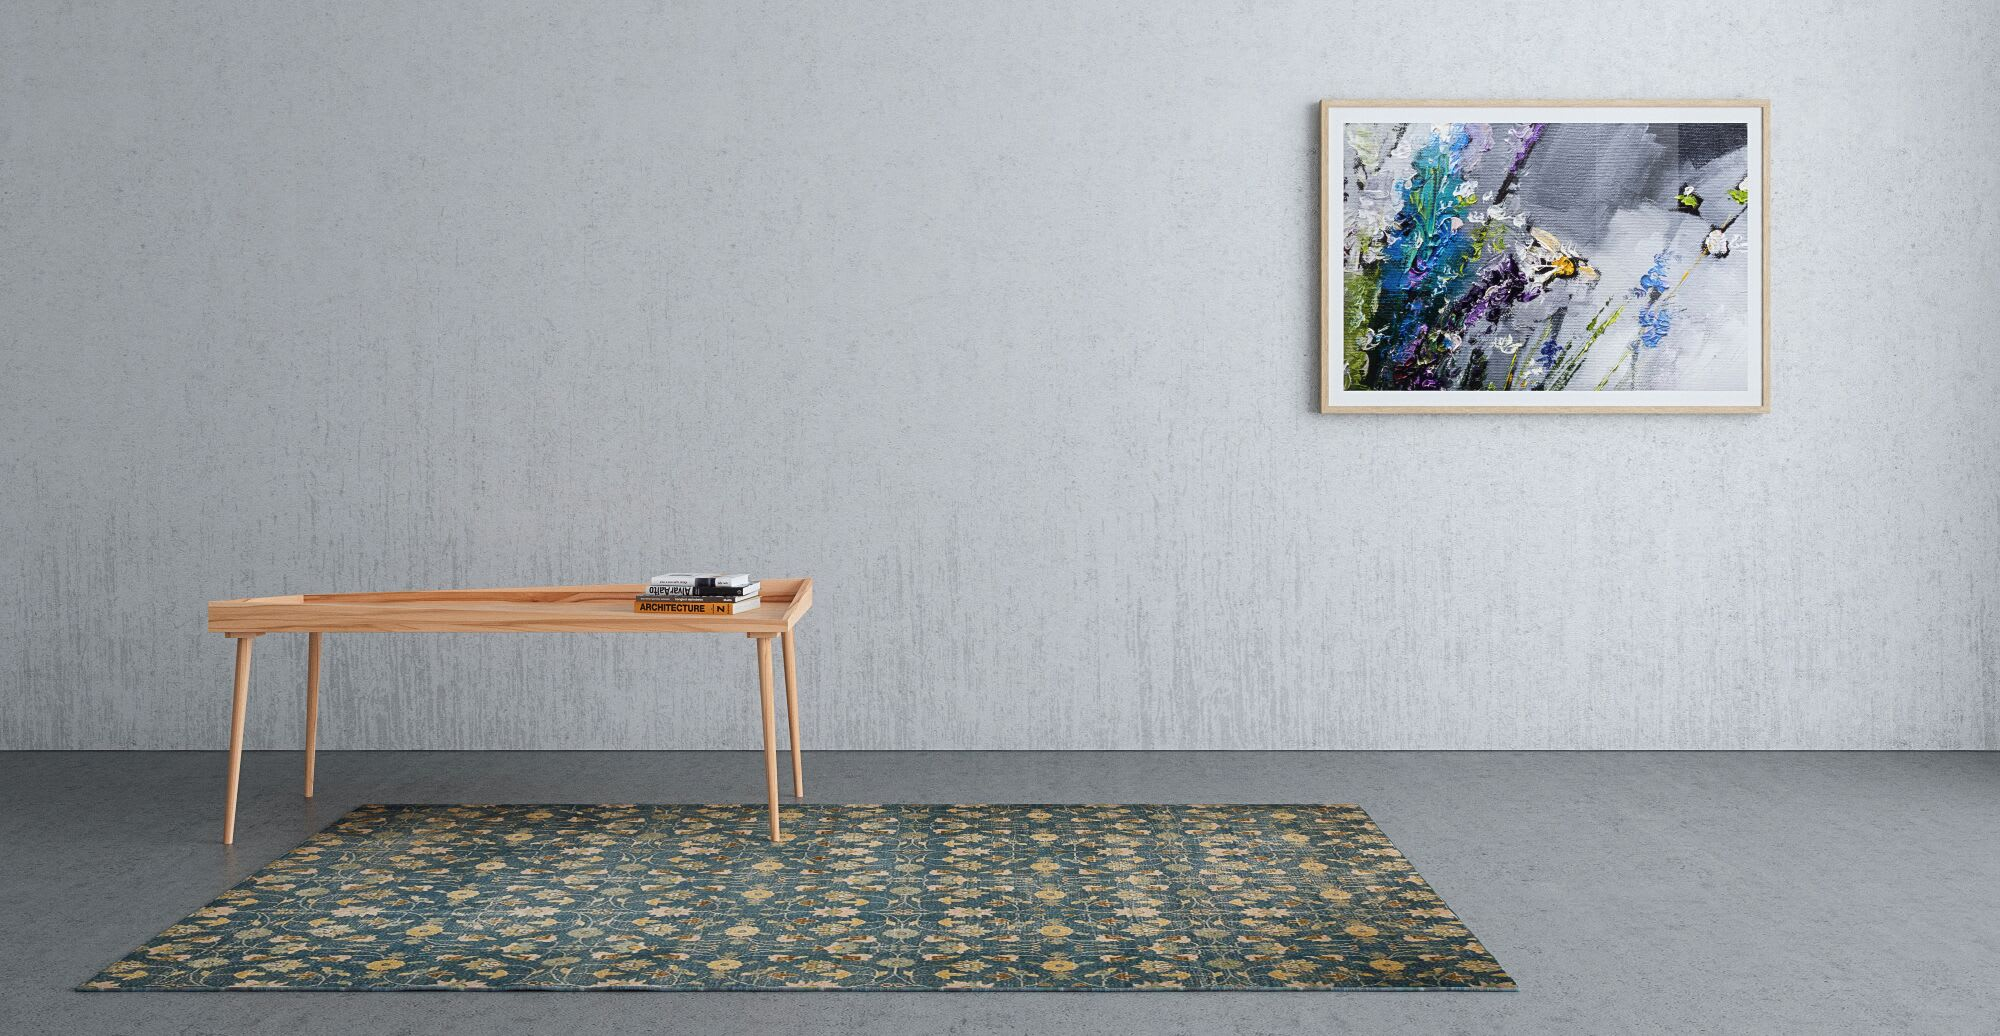 An area rug in a designed hallway